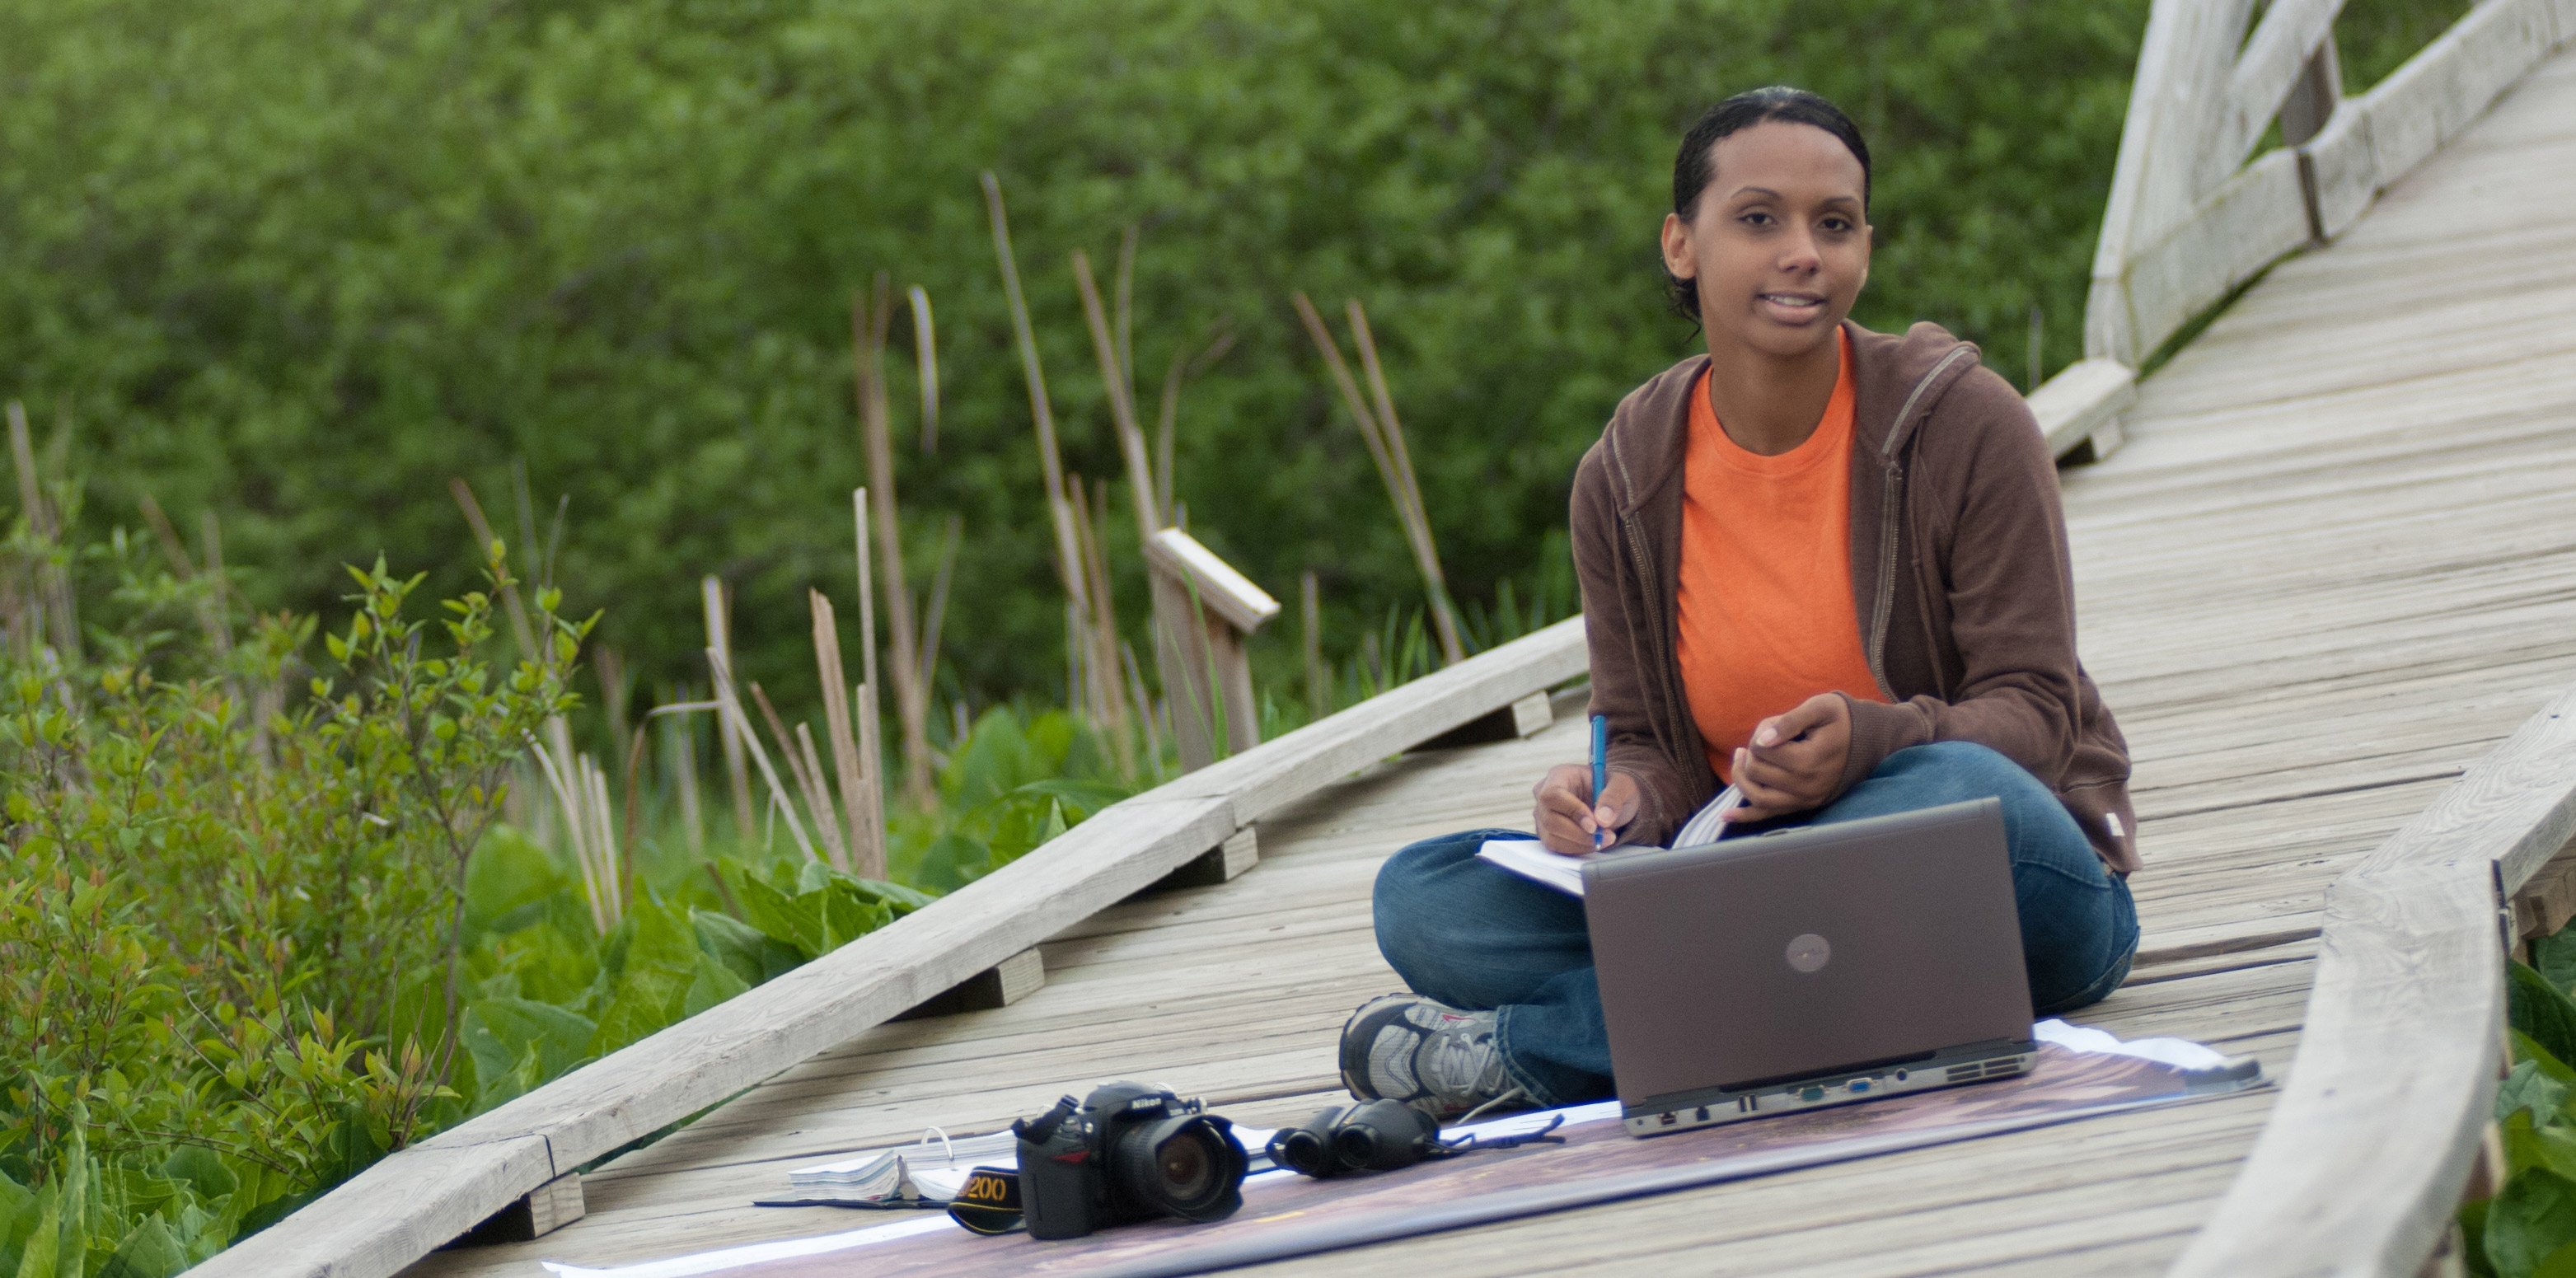 Student in wetlands with map and laptop